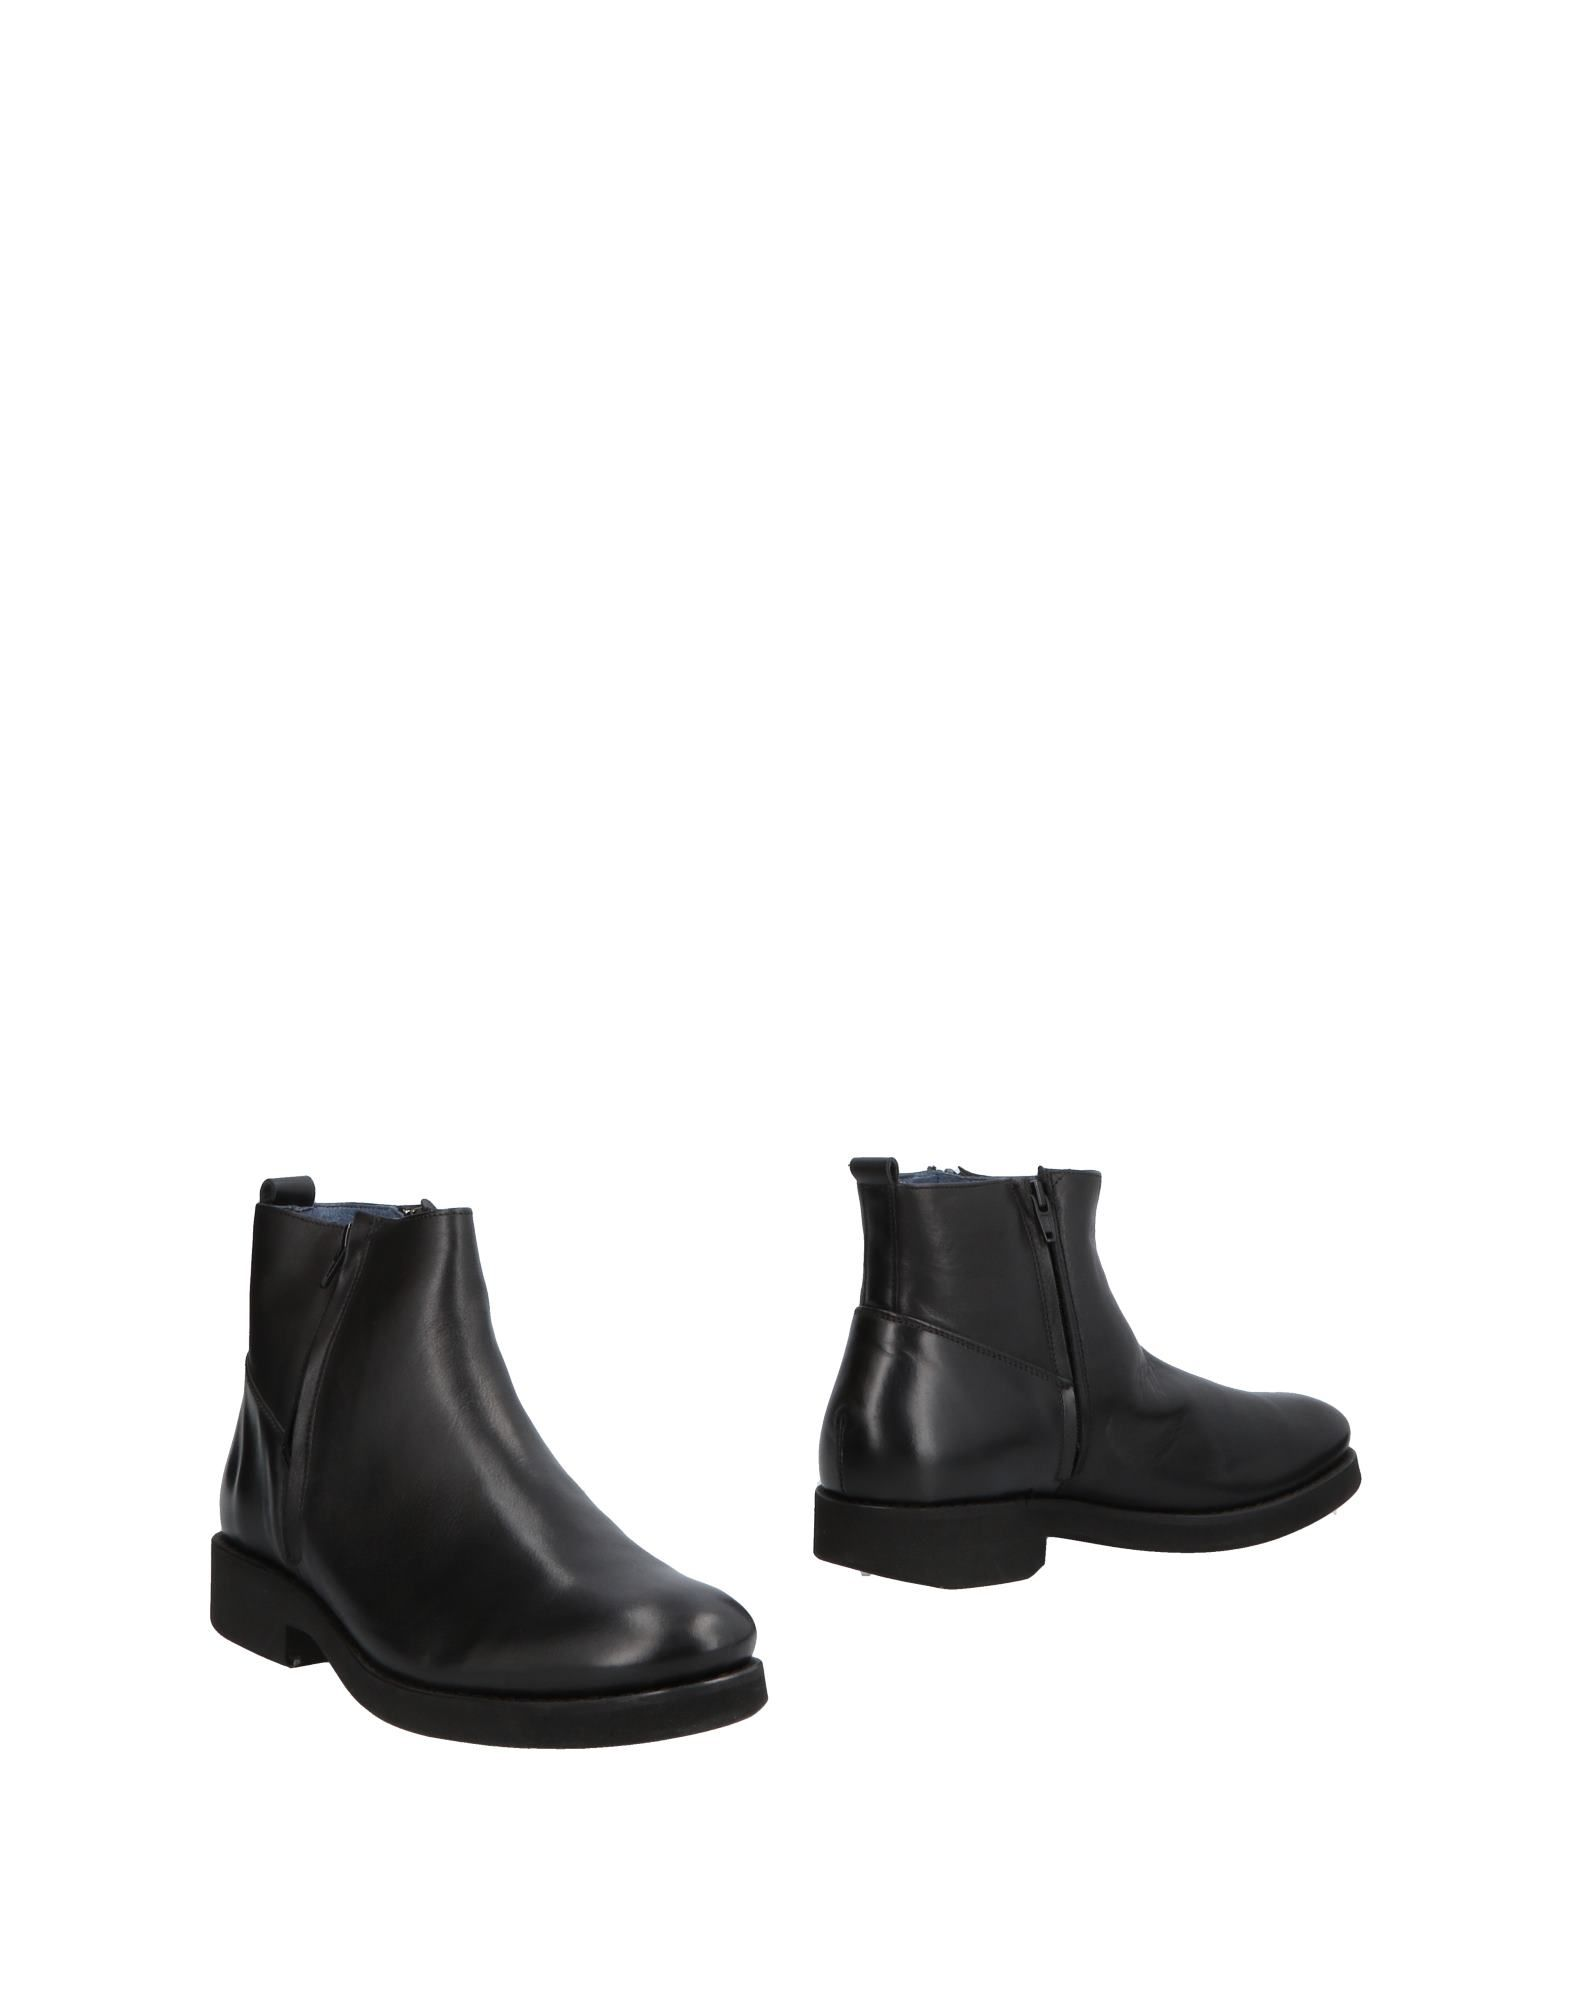 Philippe Lang Boots - - - Men Philippe Lang Boots online on  United Kingdom - 11500831WX 856e40